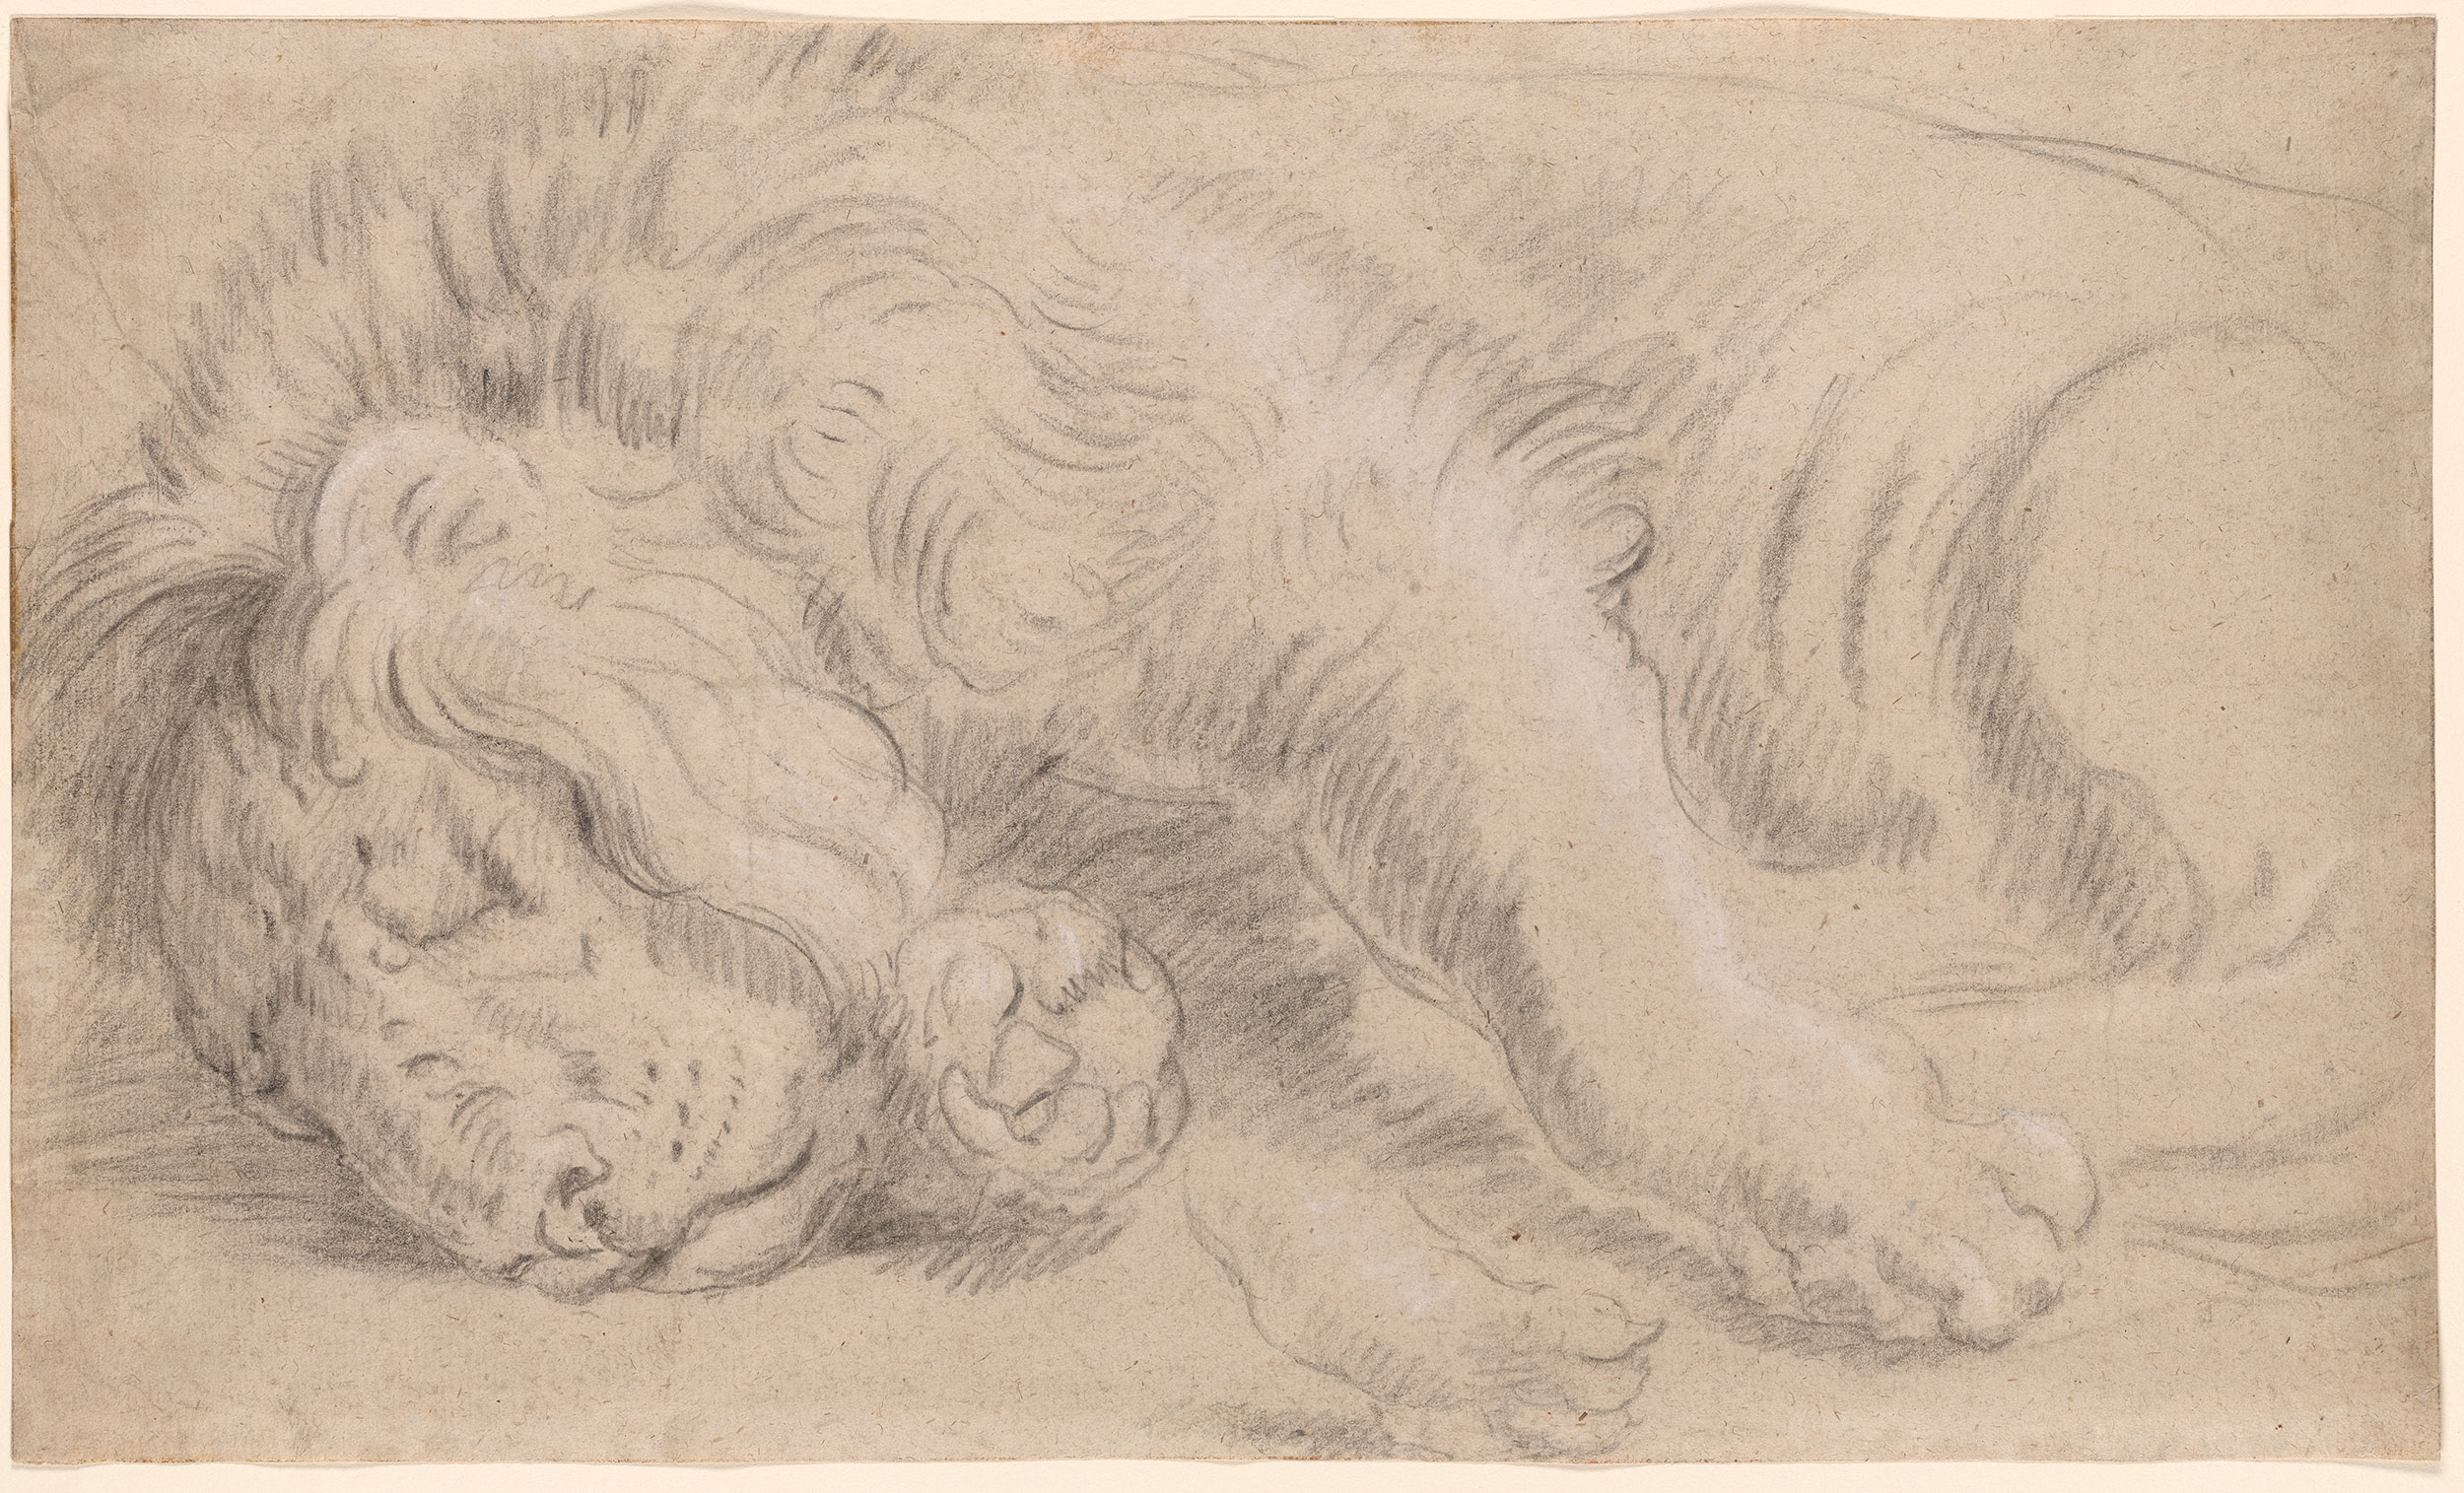 Attributed To Peter Paul Rubens Study Of A Sleeping Lion